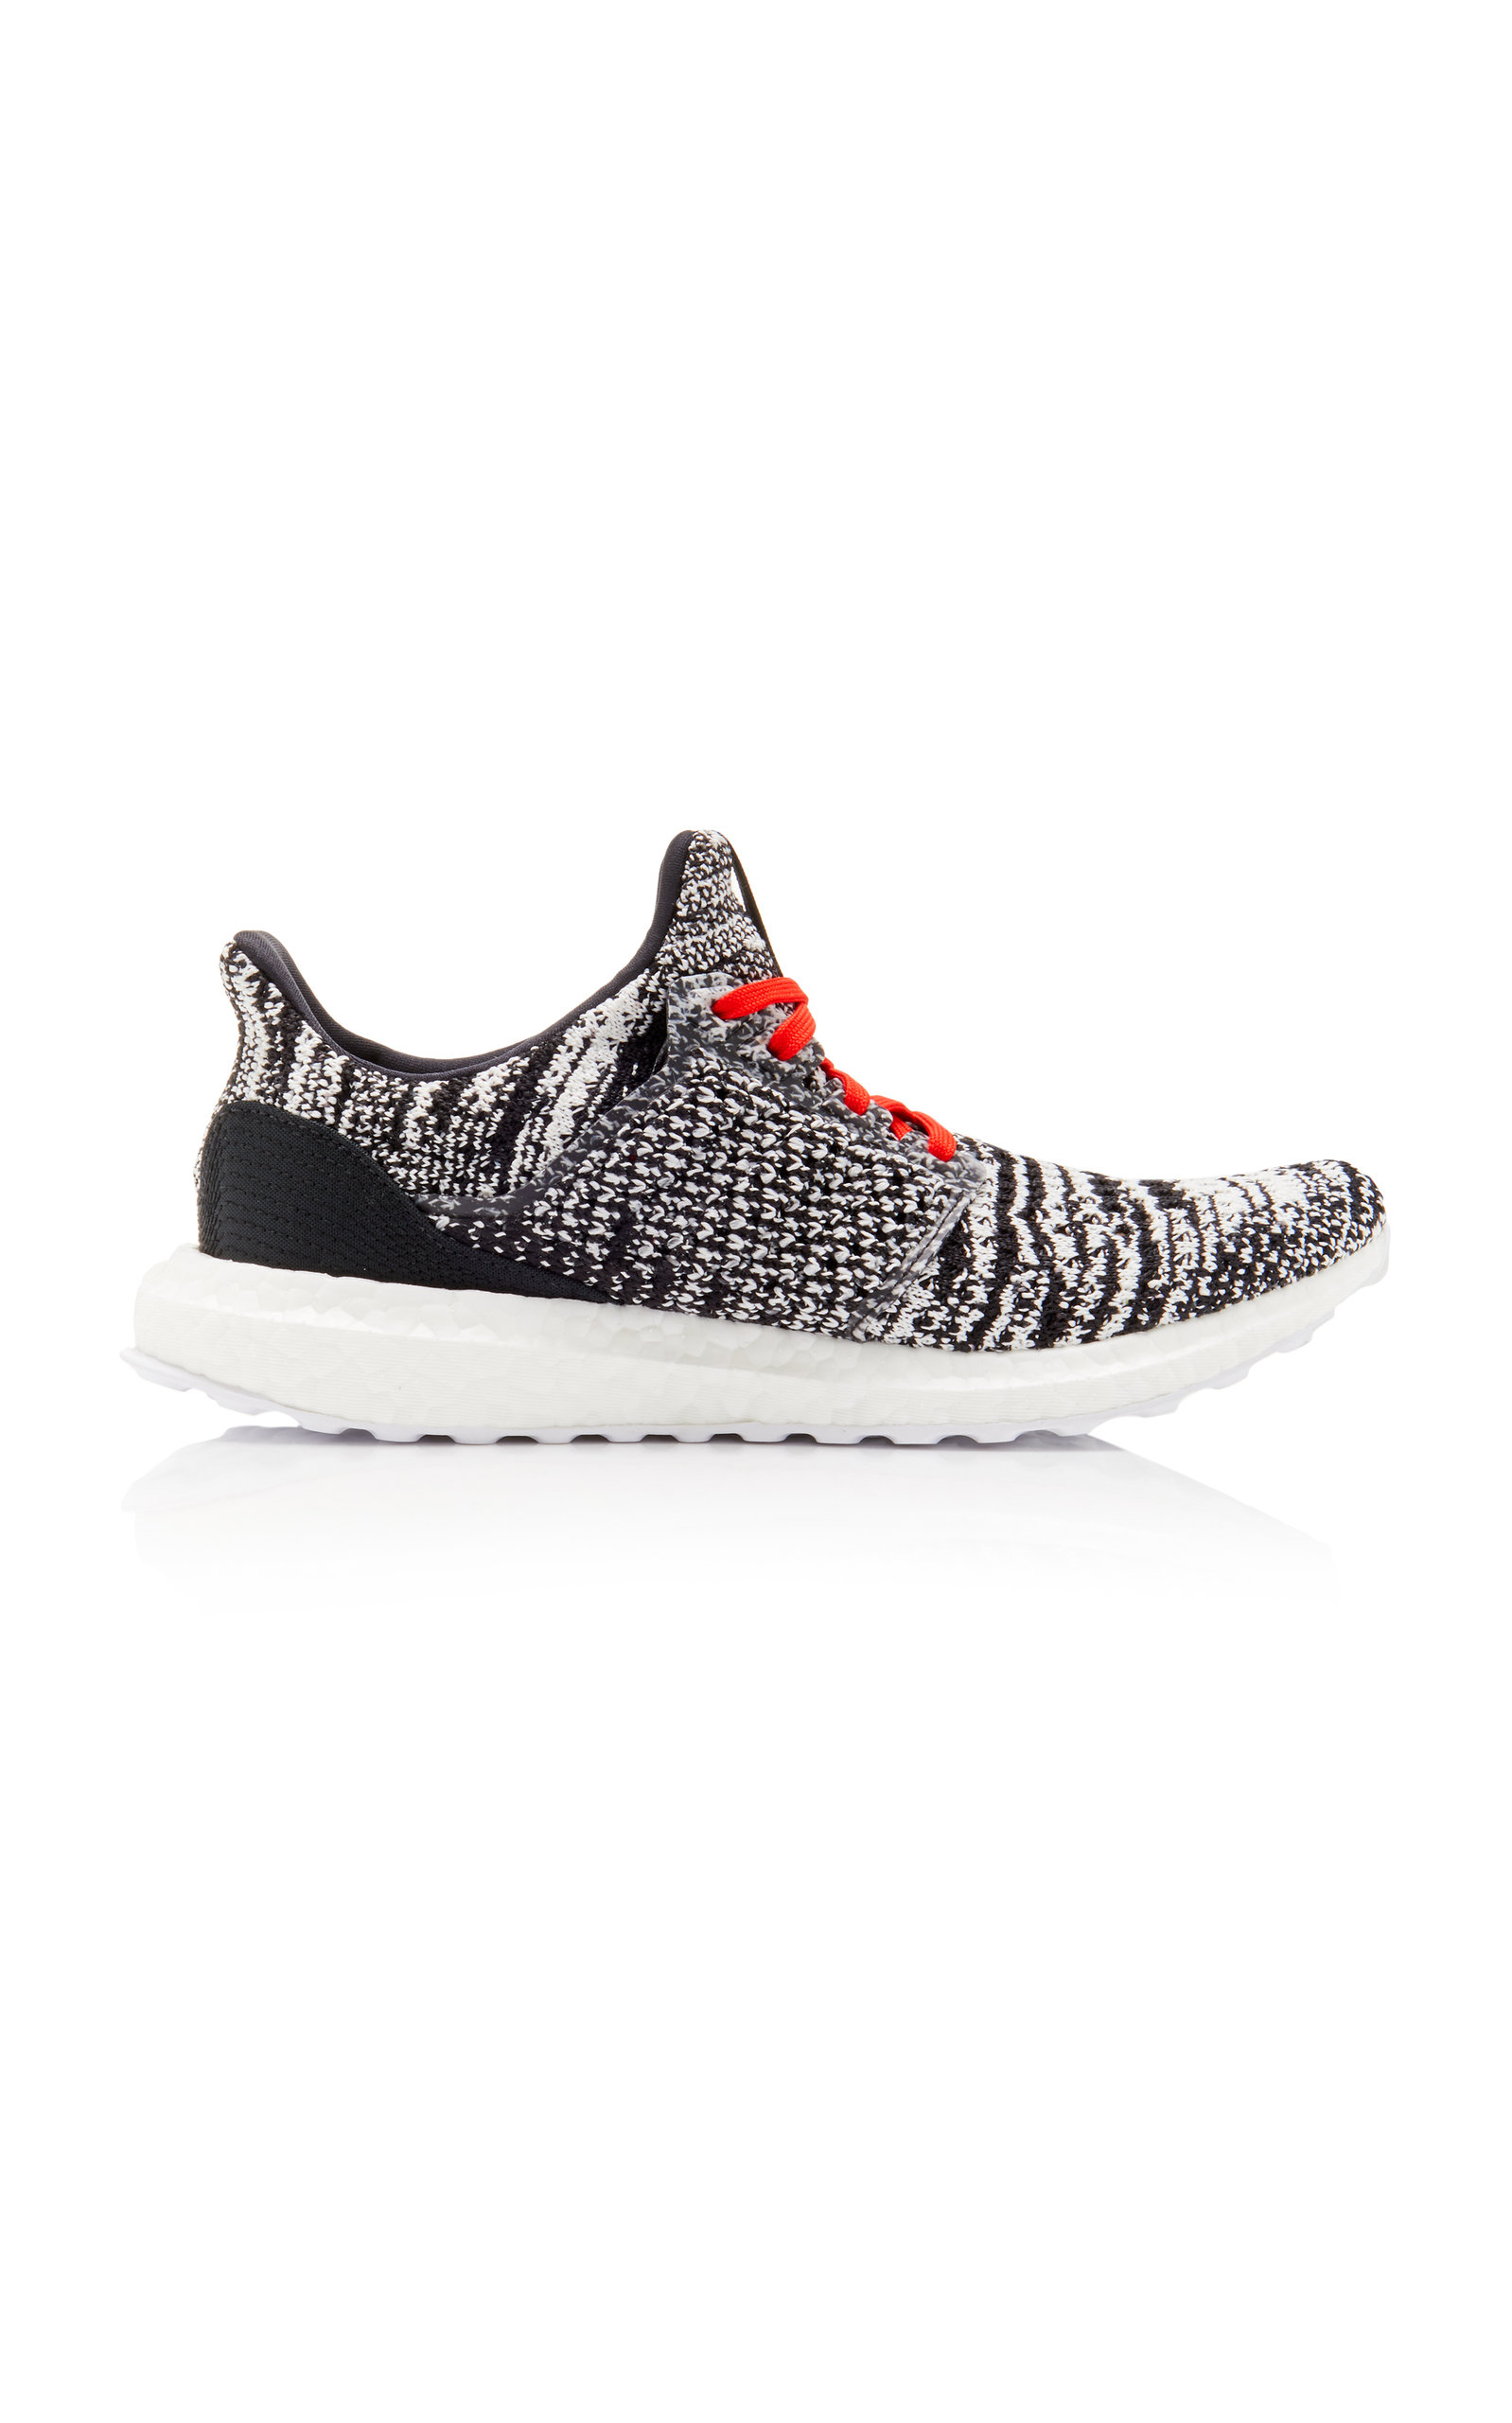 81da0098d adidas x MissoniUltraboost Clima Knit Low-Top Sneakers. CLOSE. Loading